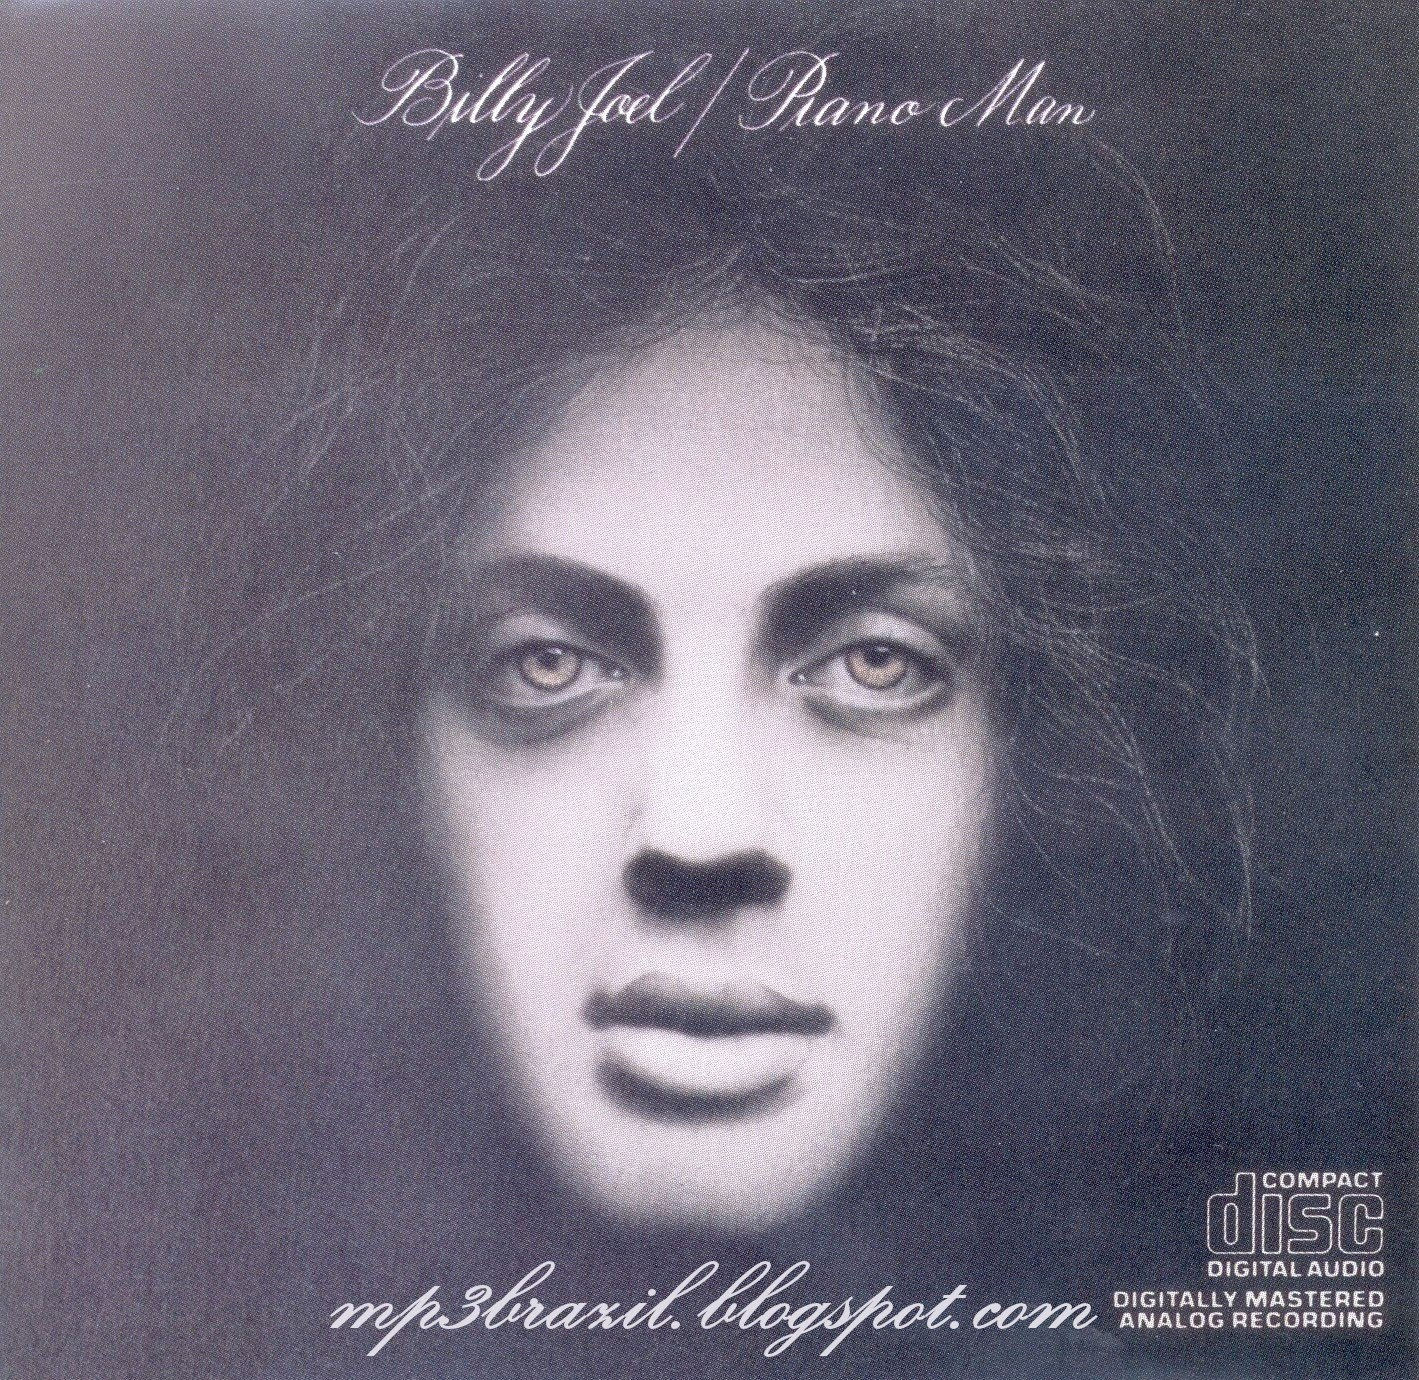 Piano Chords For Piano Man Billy Joel Billy Joel Piano Man Blogspot